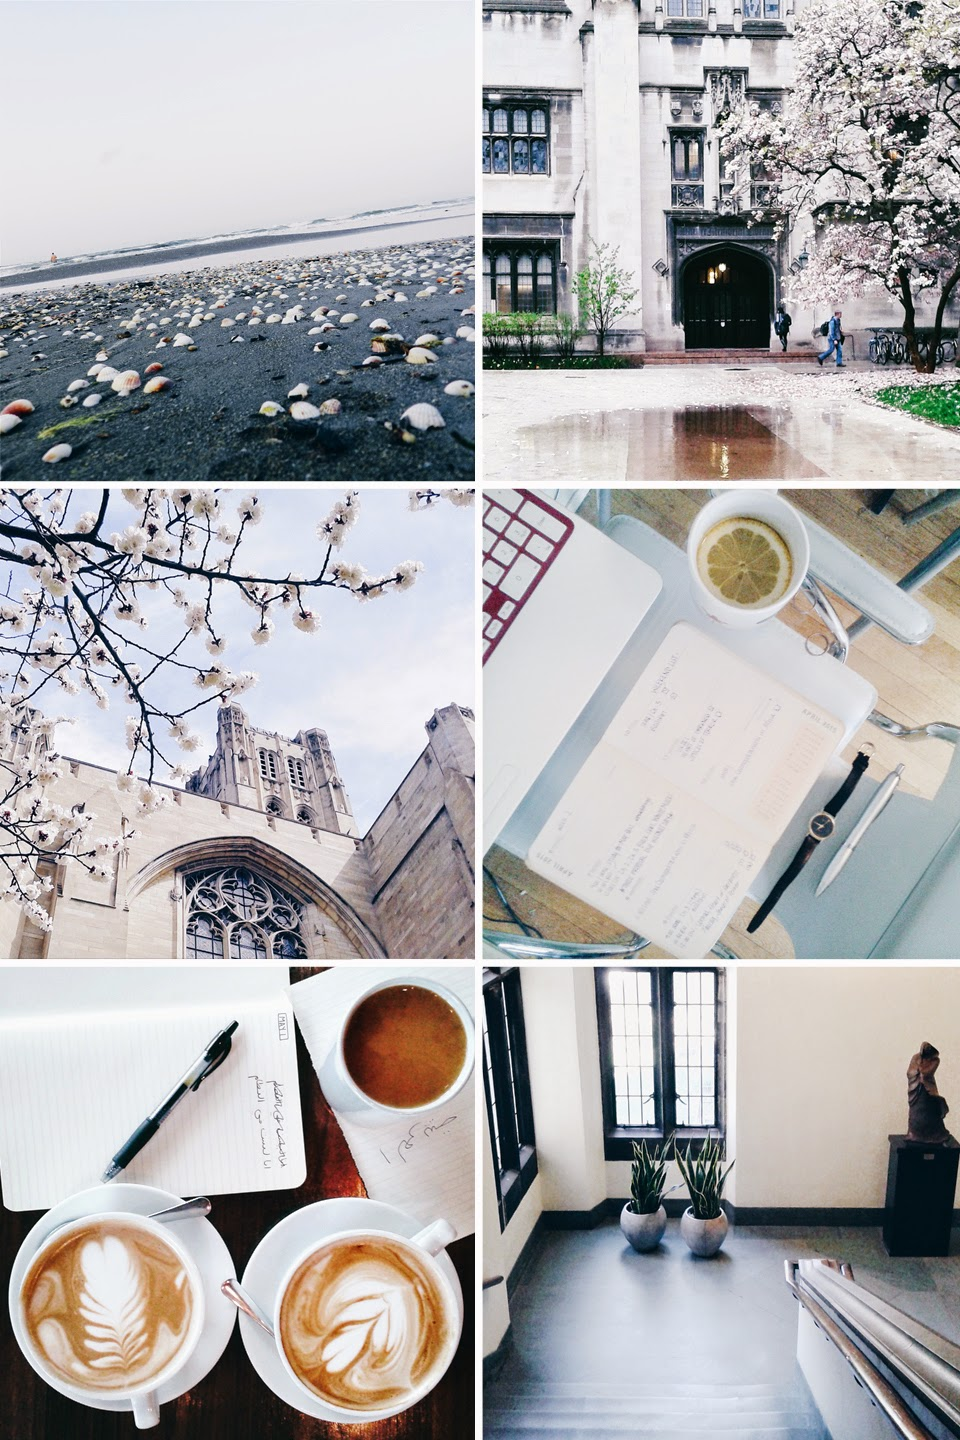 instagram feed, uchicago instagram, instagram tips, instagram tags, uchicago